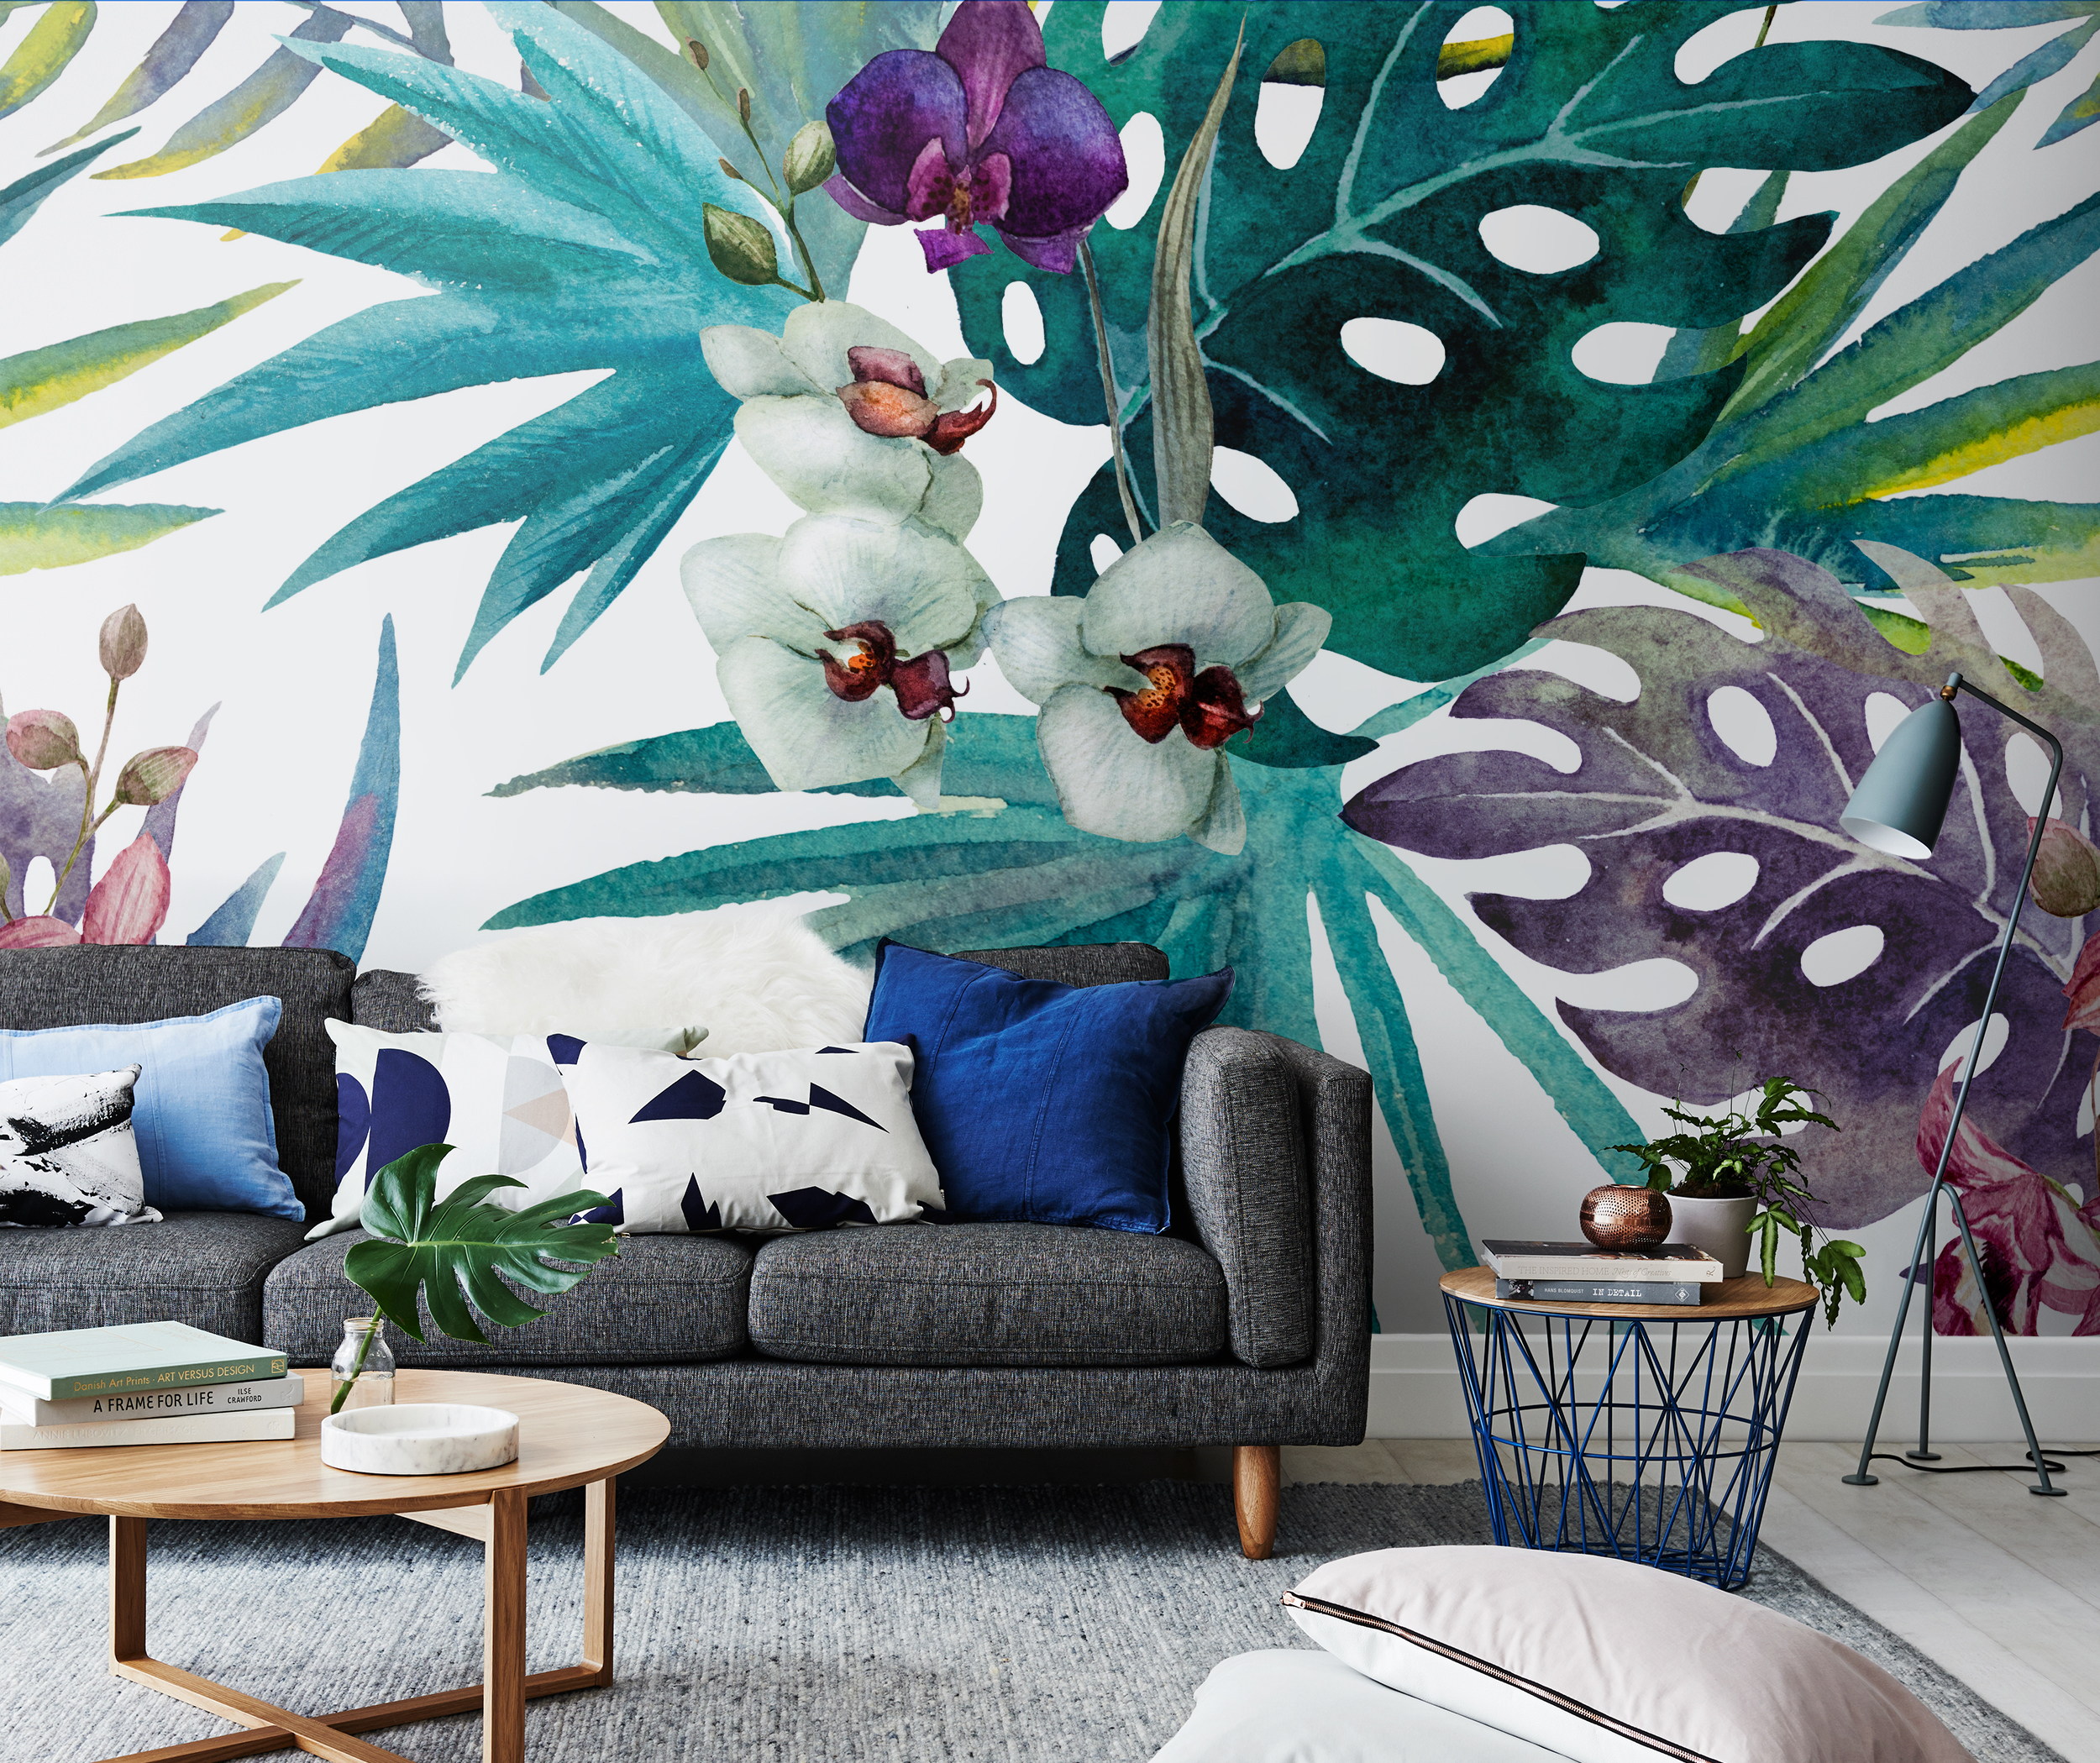 25 Wall Mural Designs: 13 Incredible Wallpapers And Wall Murals